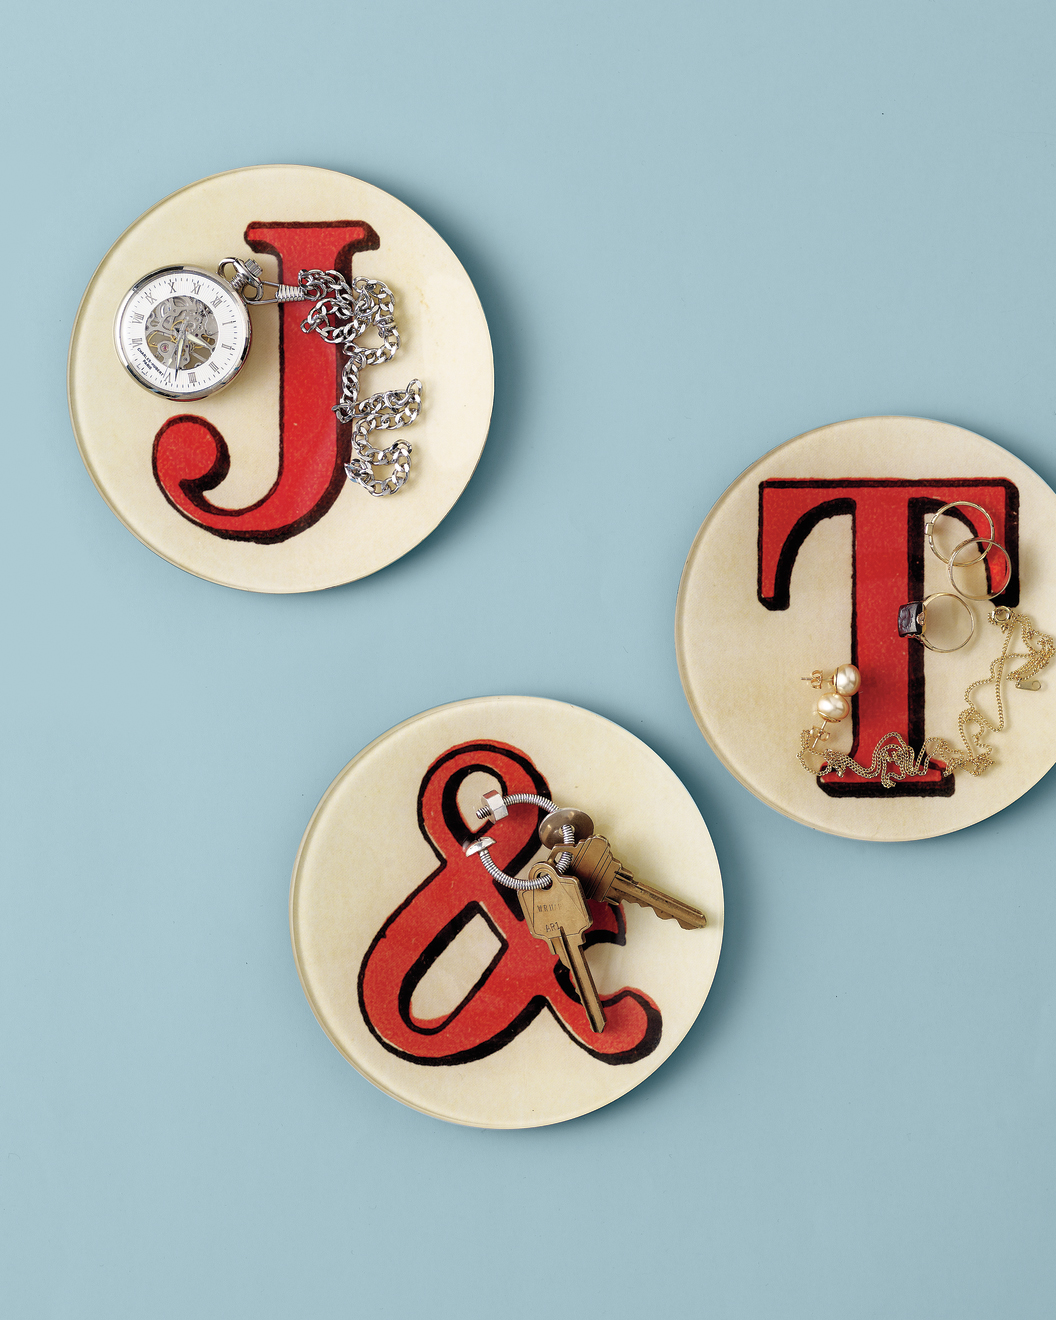 red-letter-plates-mwd108401.jpg